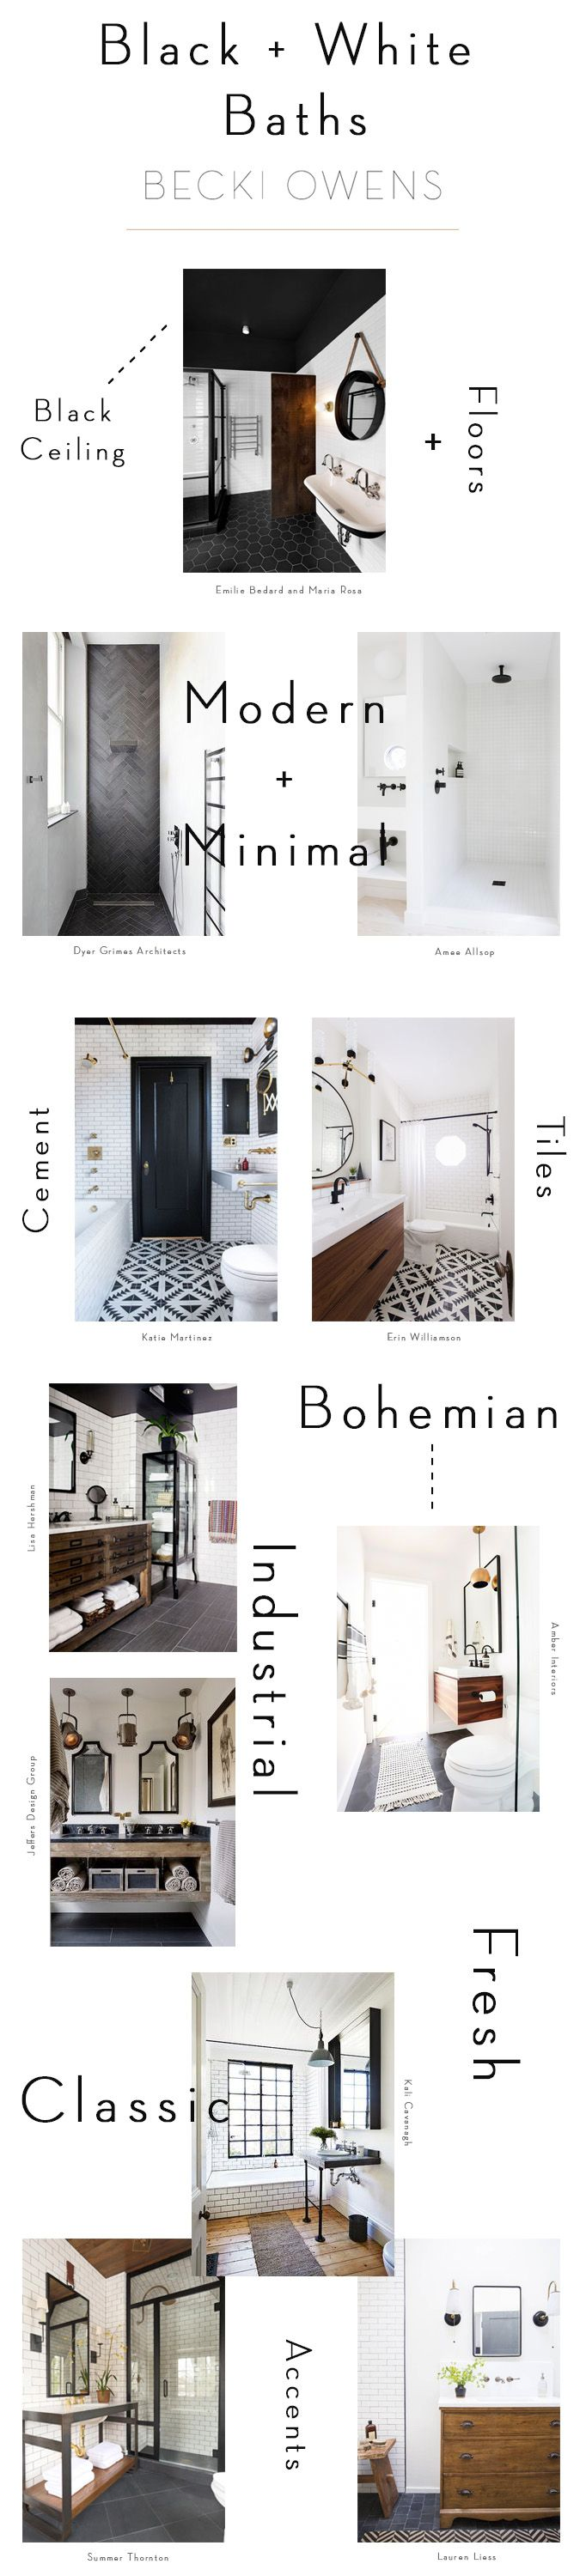 Black and White Bathrooms - Becki Owens